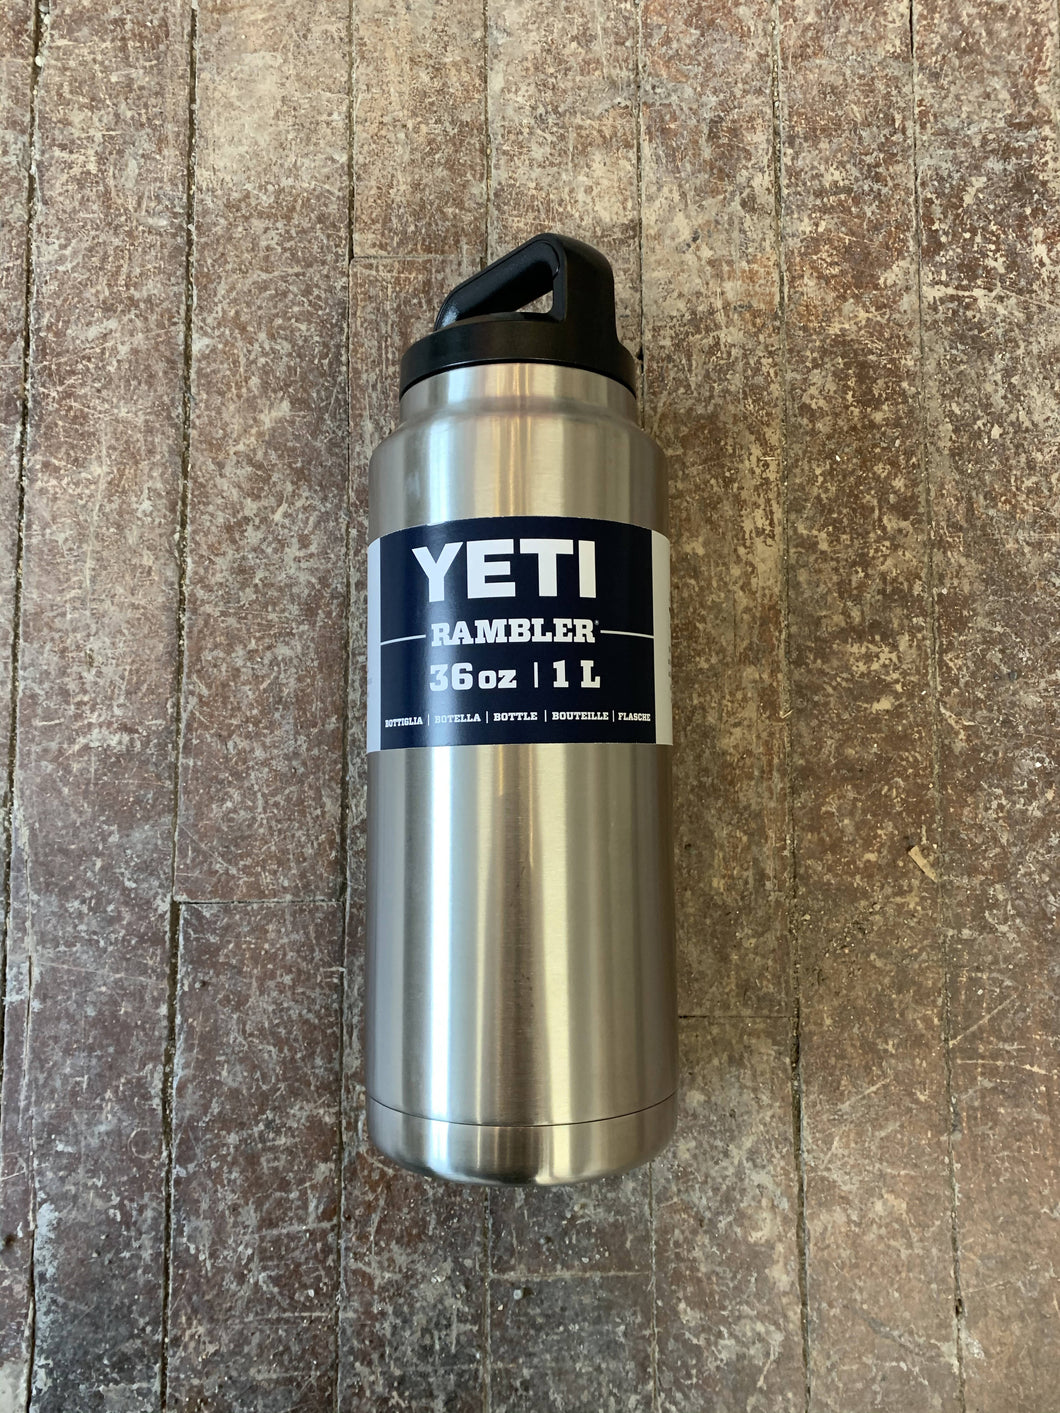 Yeti 36oz Rambler Bottle with Chug Cap Stainless Steel